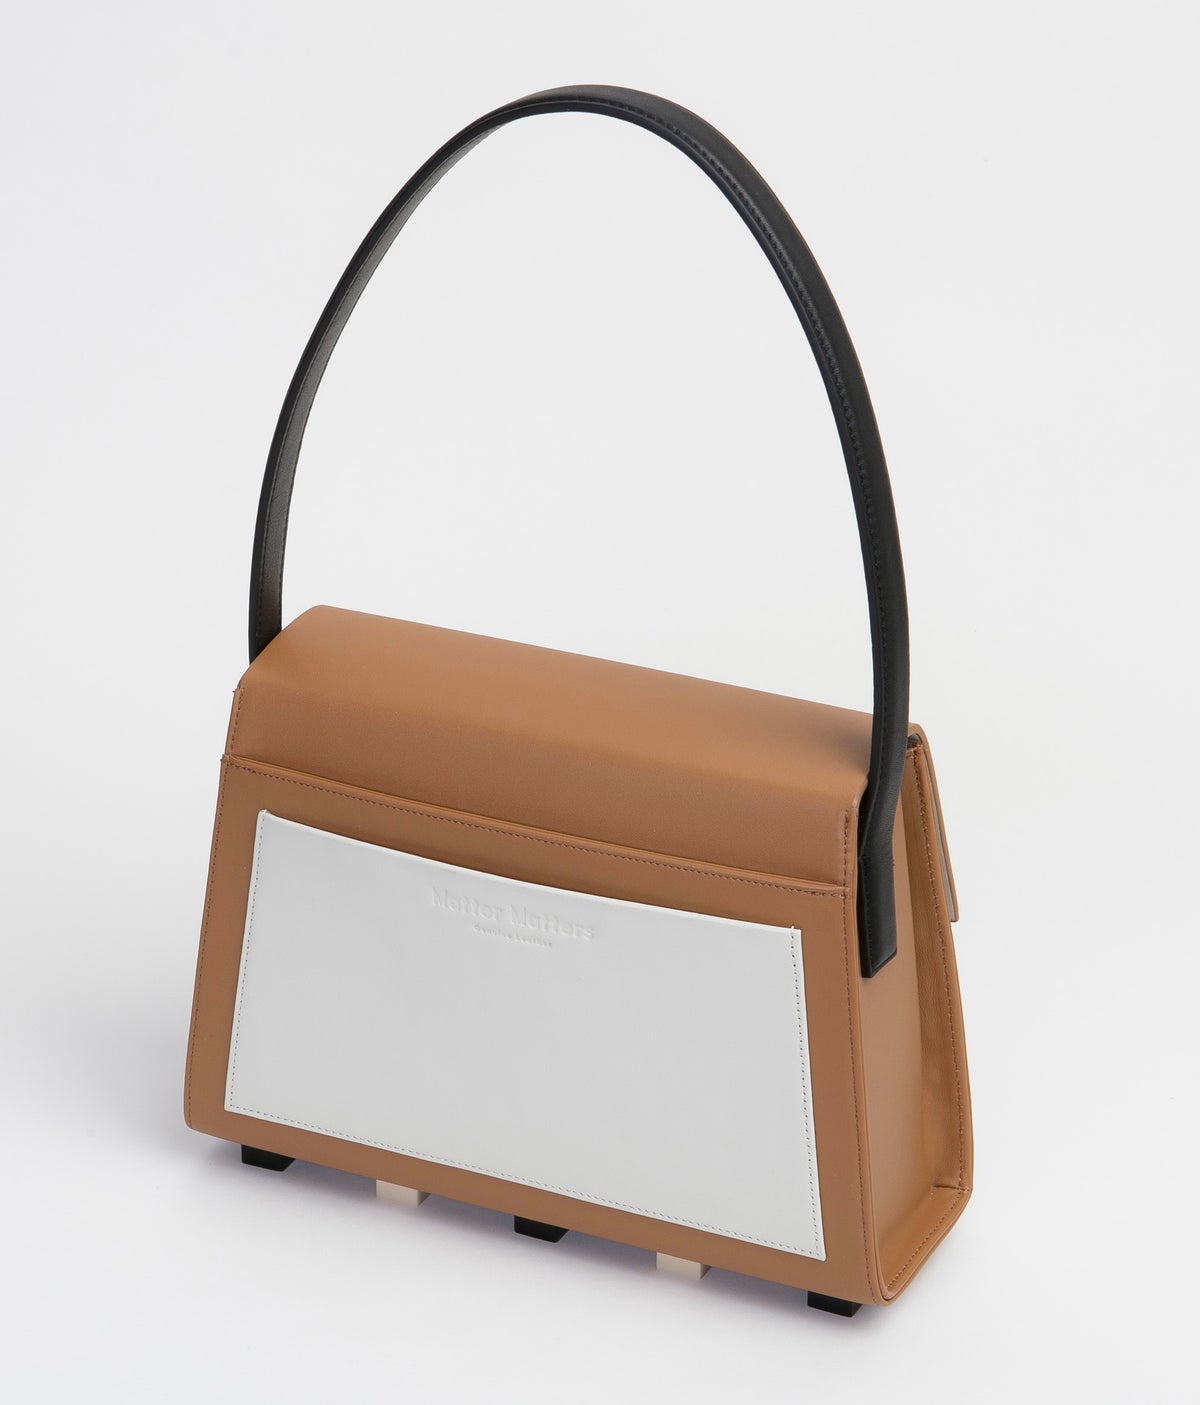 Image of Long Trapezoid satchel bag • Brown with Top Handle